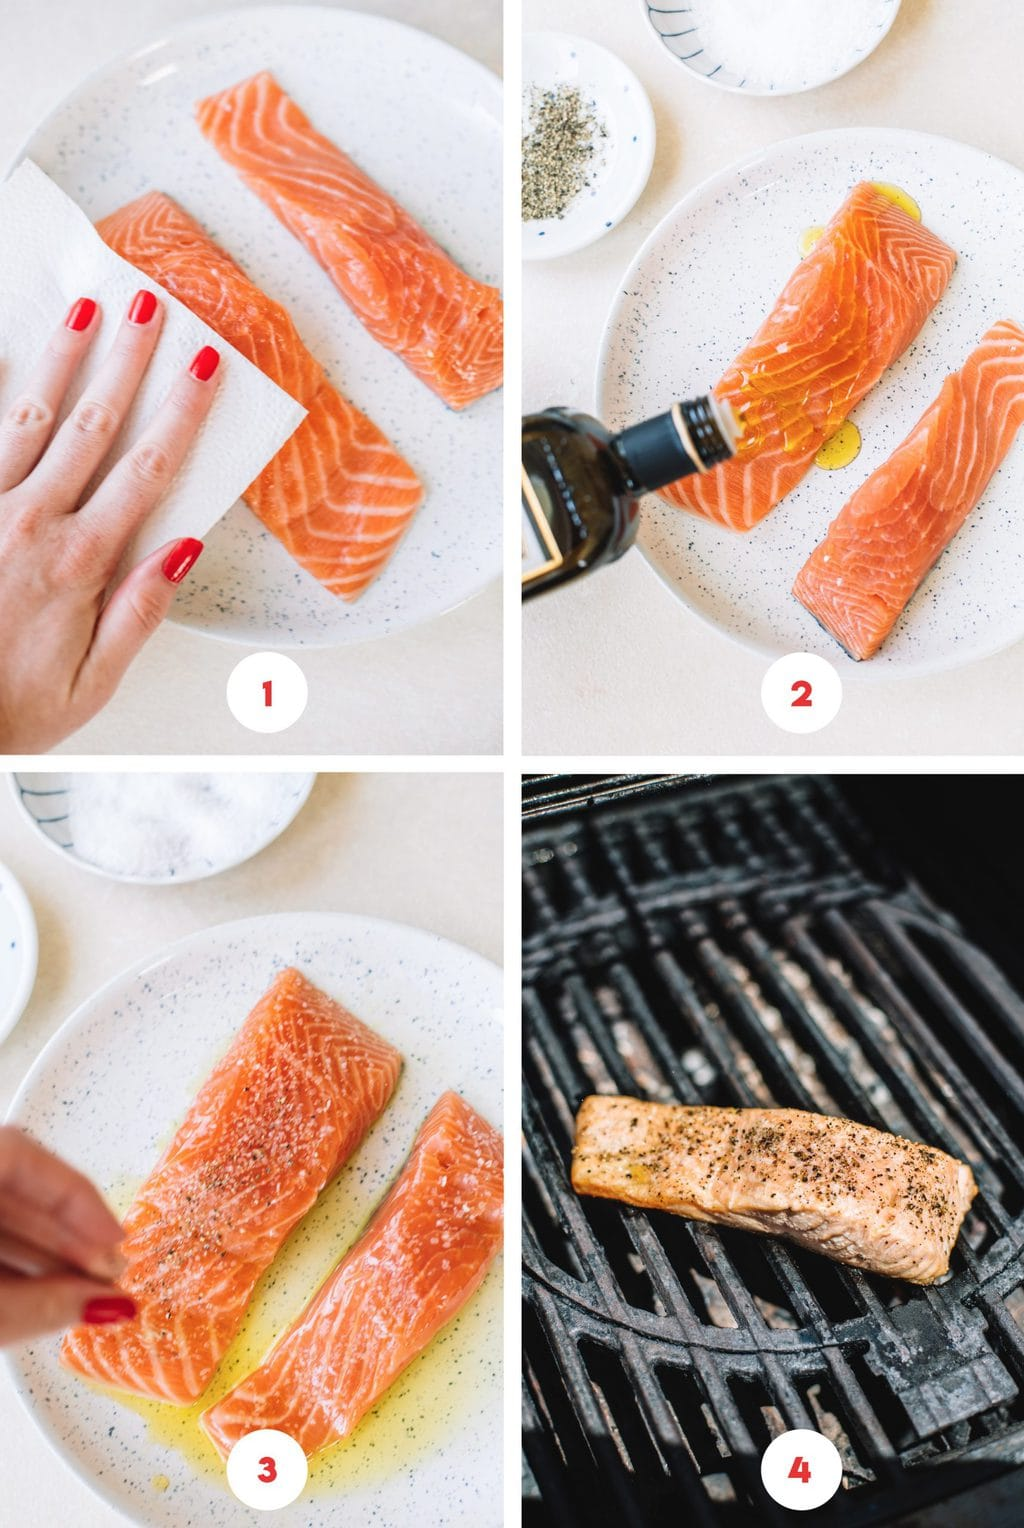 Step by step process on how to prep and grill salmon.